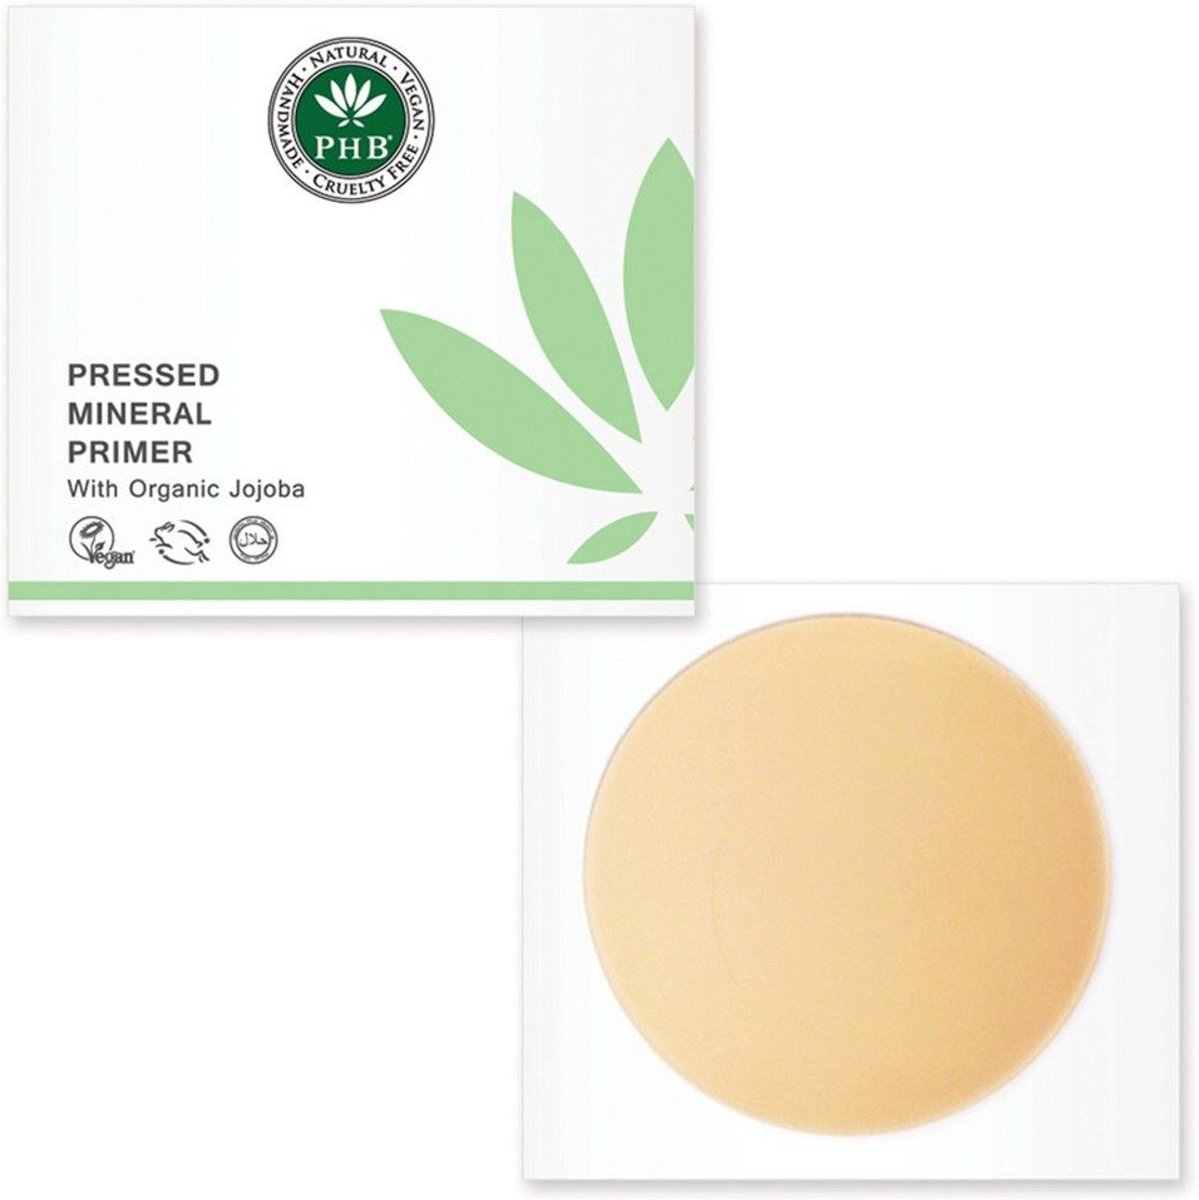 PHB Pressed priming powder